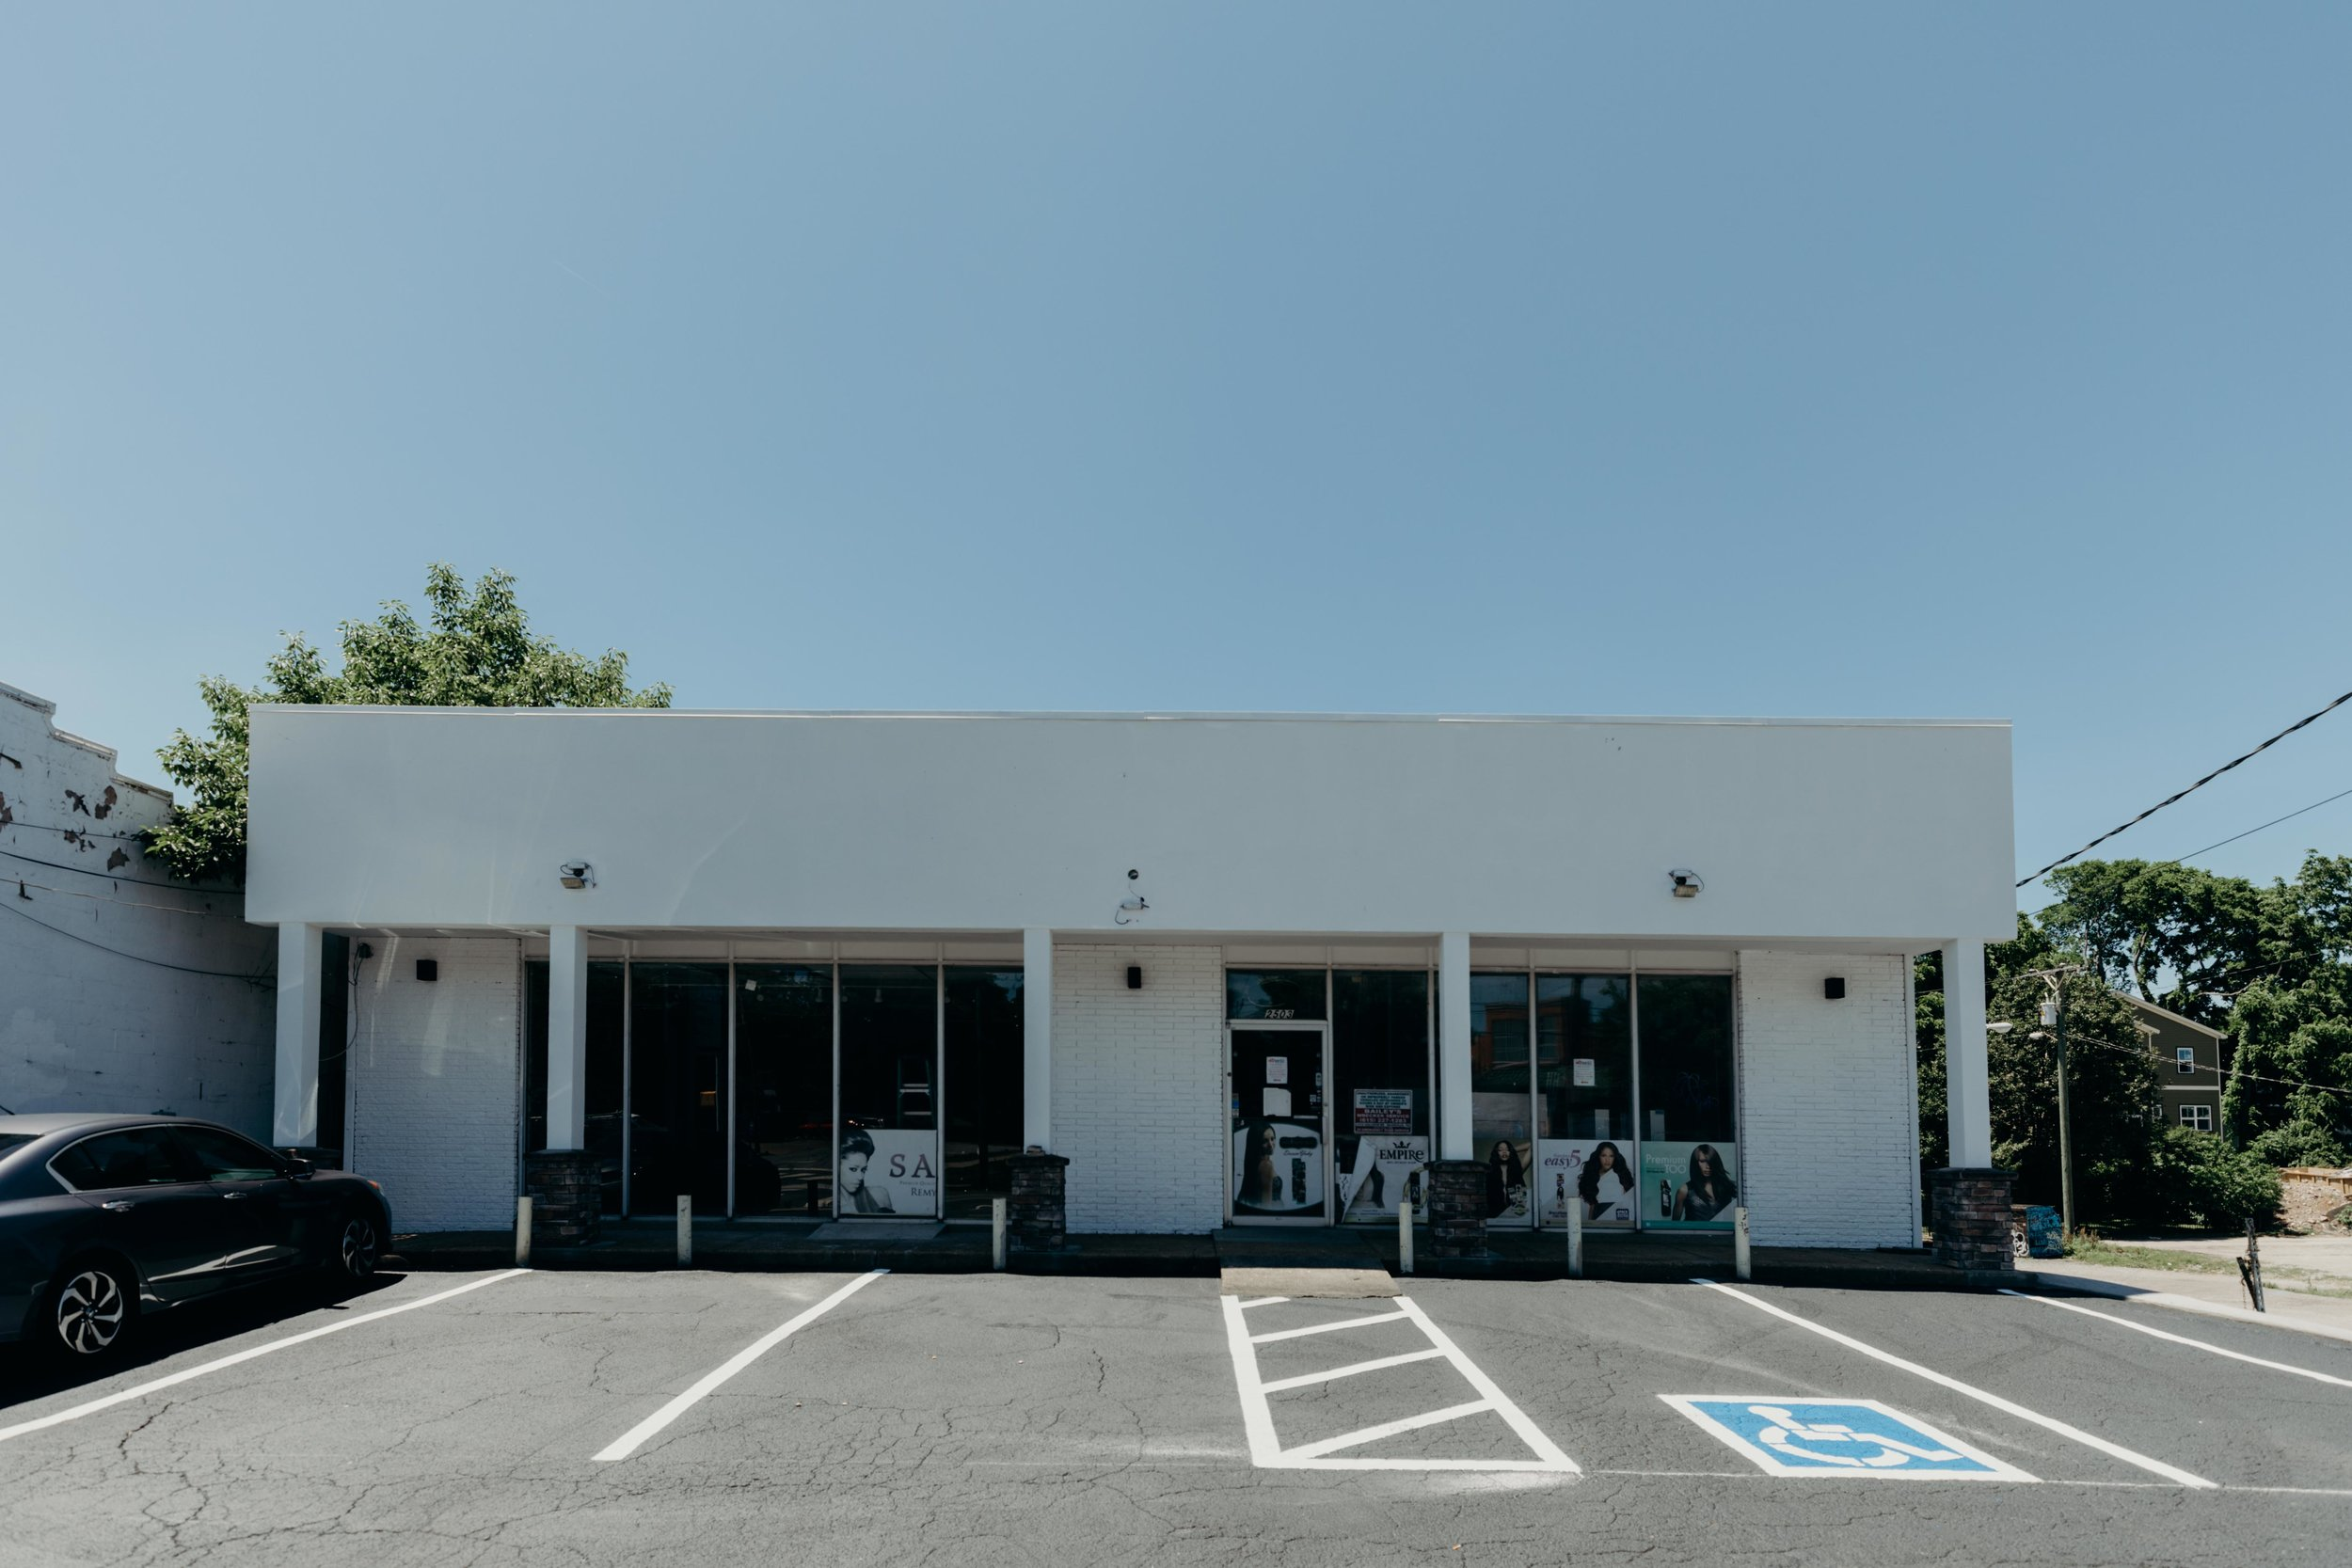 2503 Gallatin Avenue - East NashvilleRetail/Storage | 2,400 - 5,400 sfHigh visibility on Gallatin Avenue at Cahal Ave (lighted intersection). Rare amount of on site parking for East Nashville. Four minutes to Five Points and six minutes to Downtown Nashville. Open floor plan.